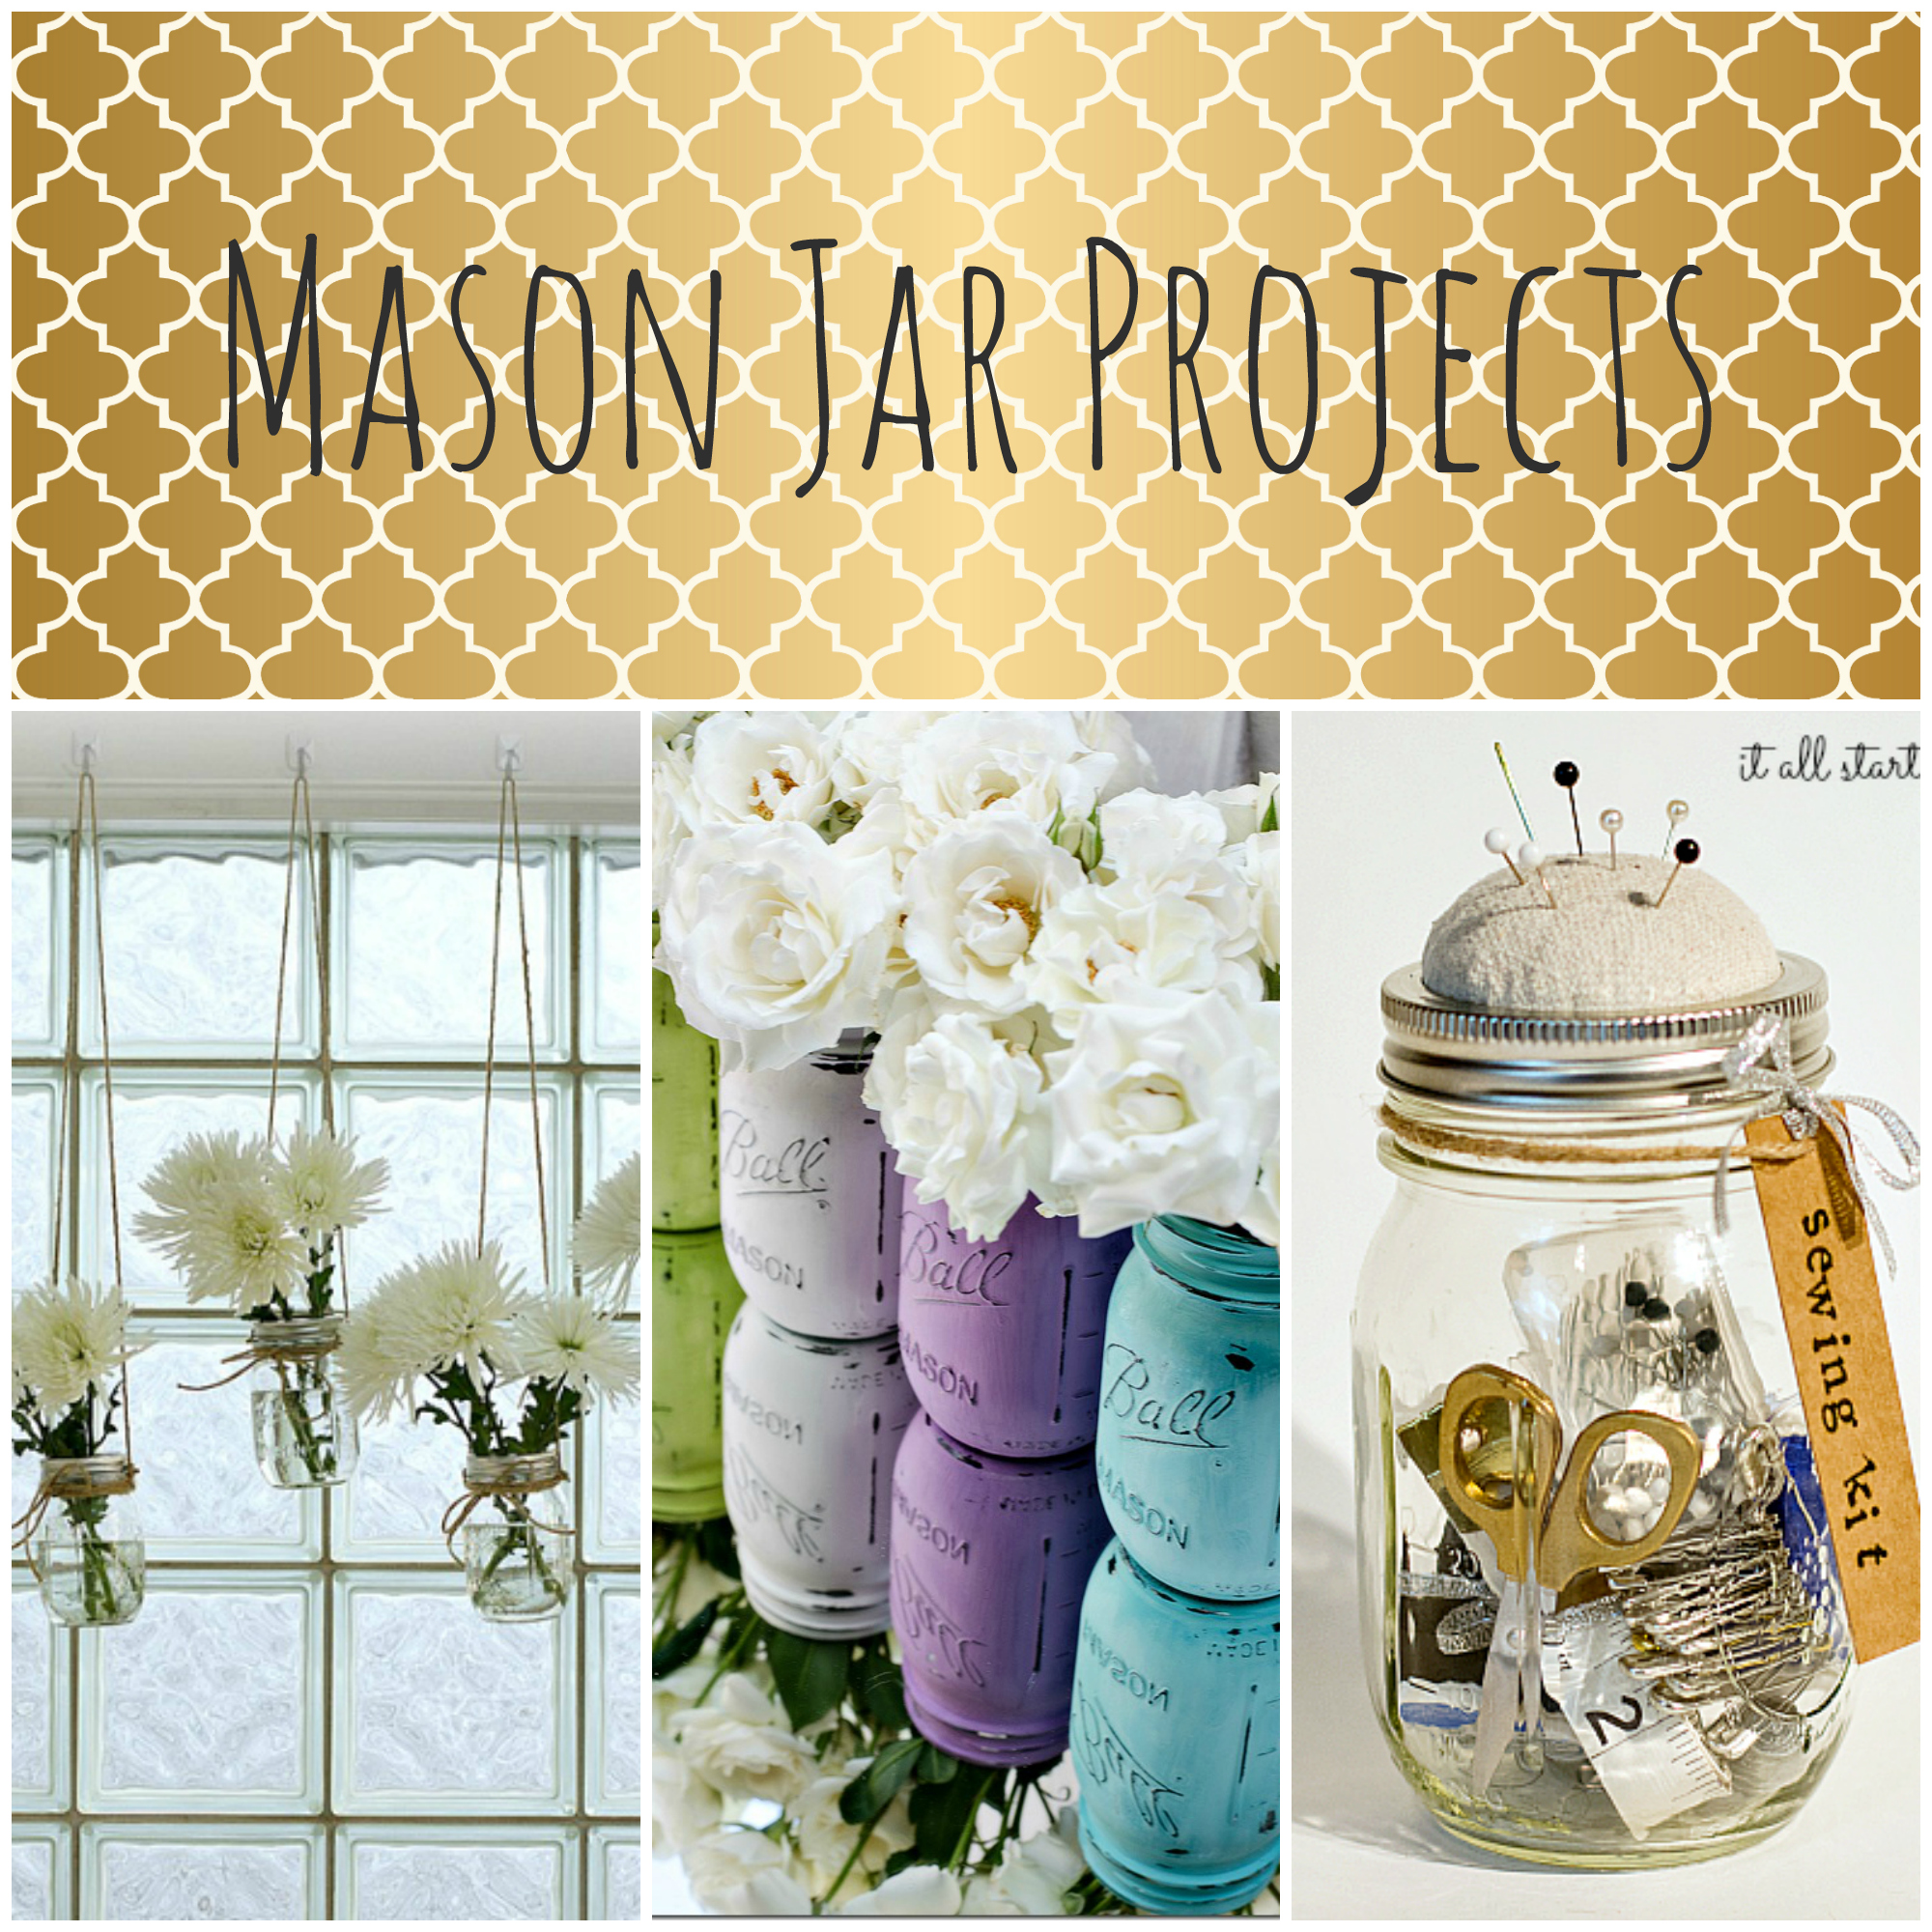 Mason Jar Project Ideas